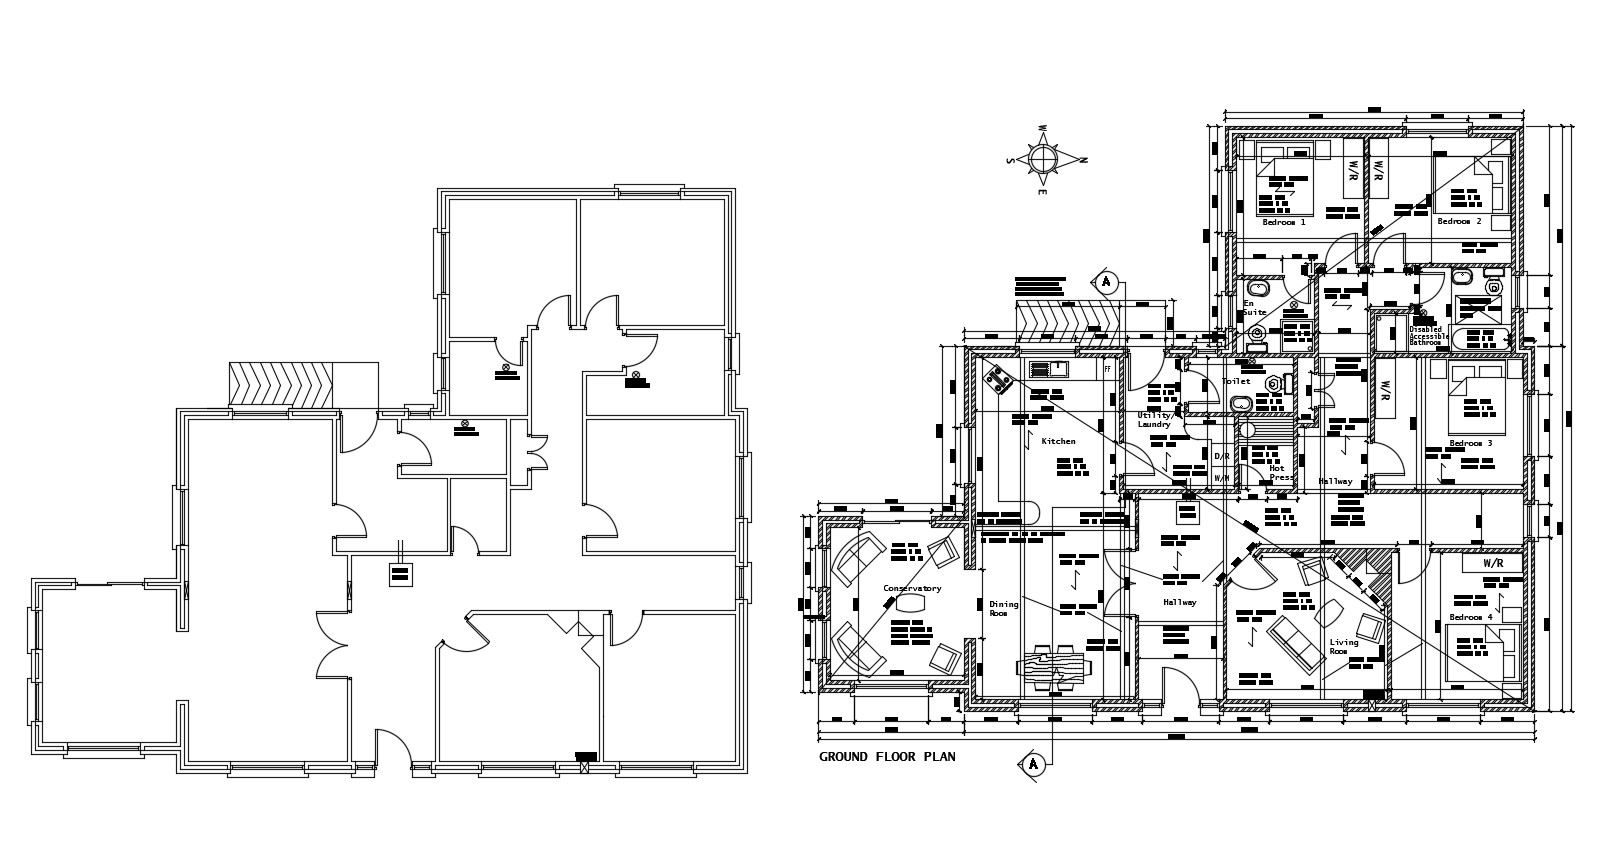 Floor plan of the residential house with furniture details in dwg file